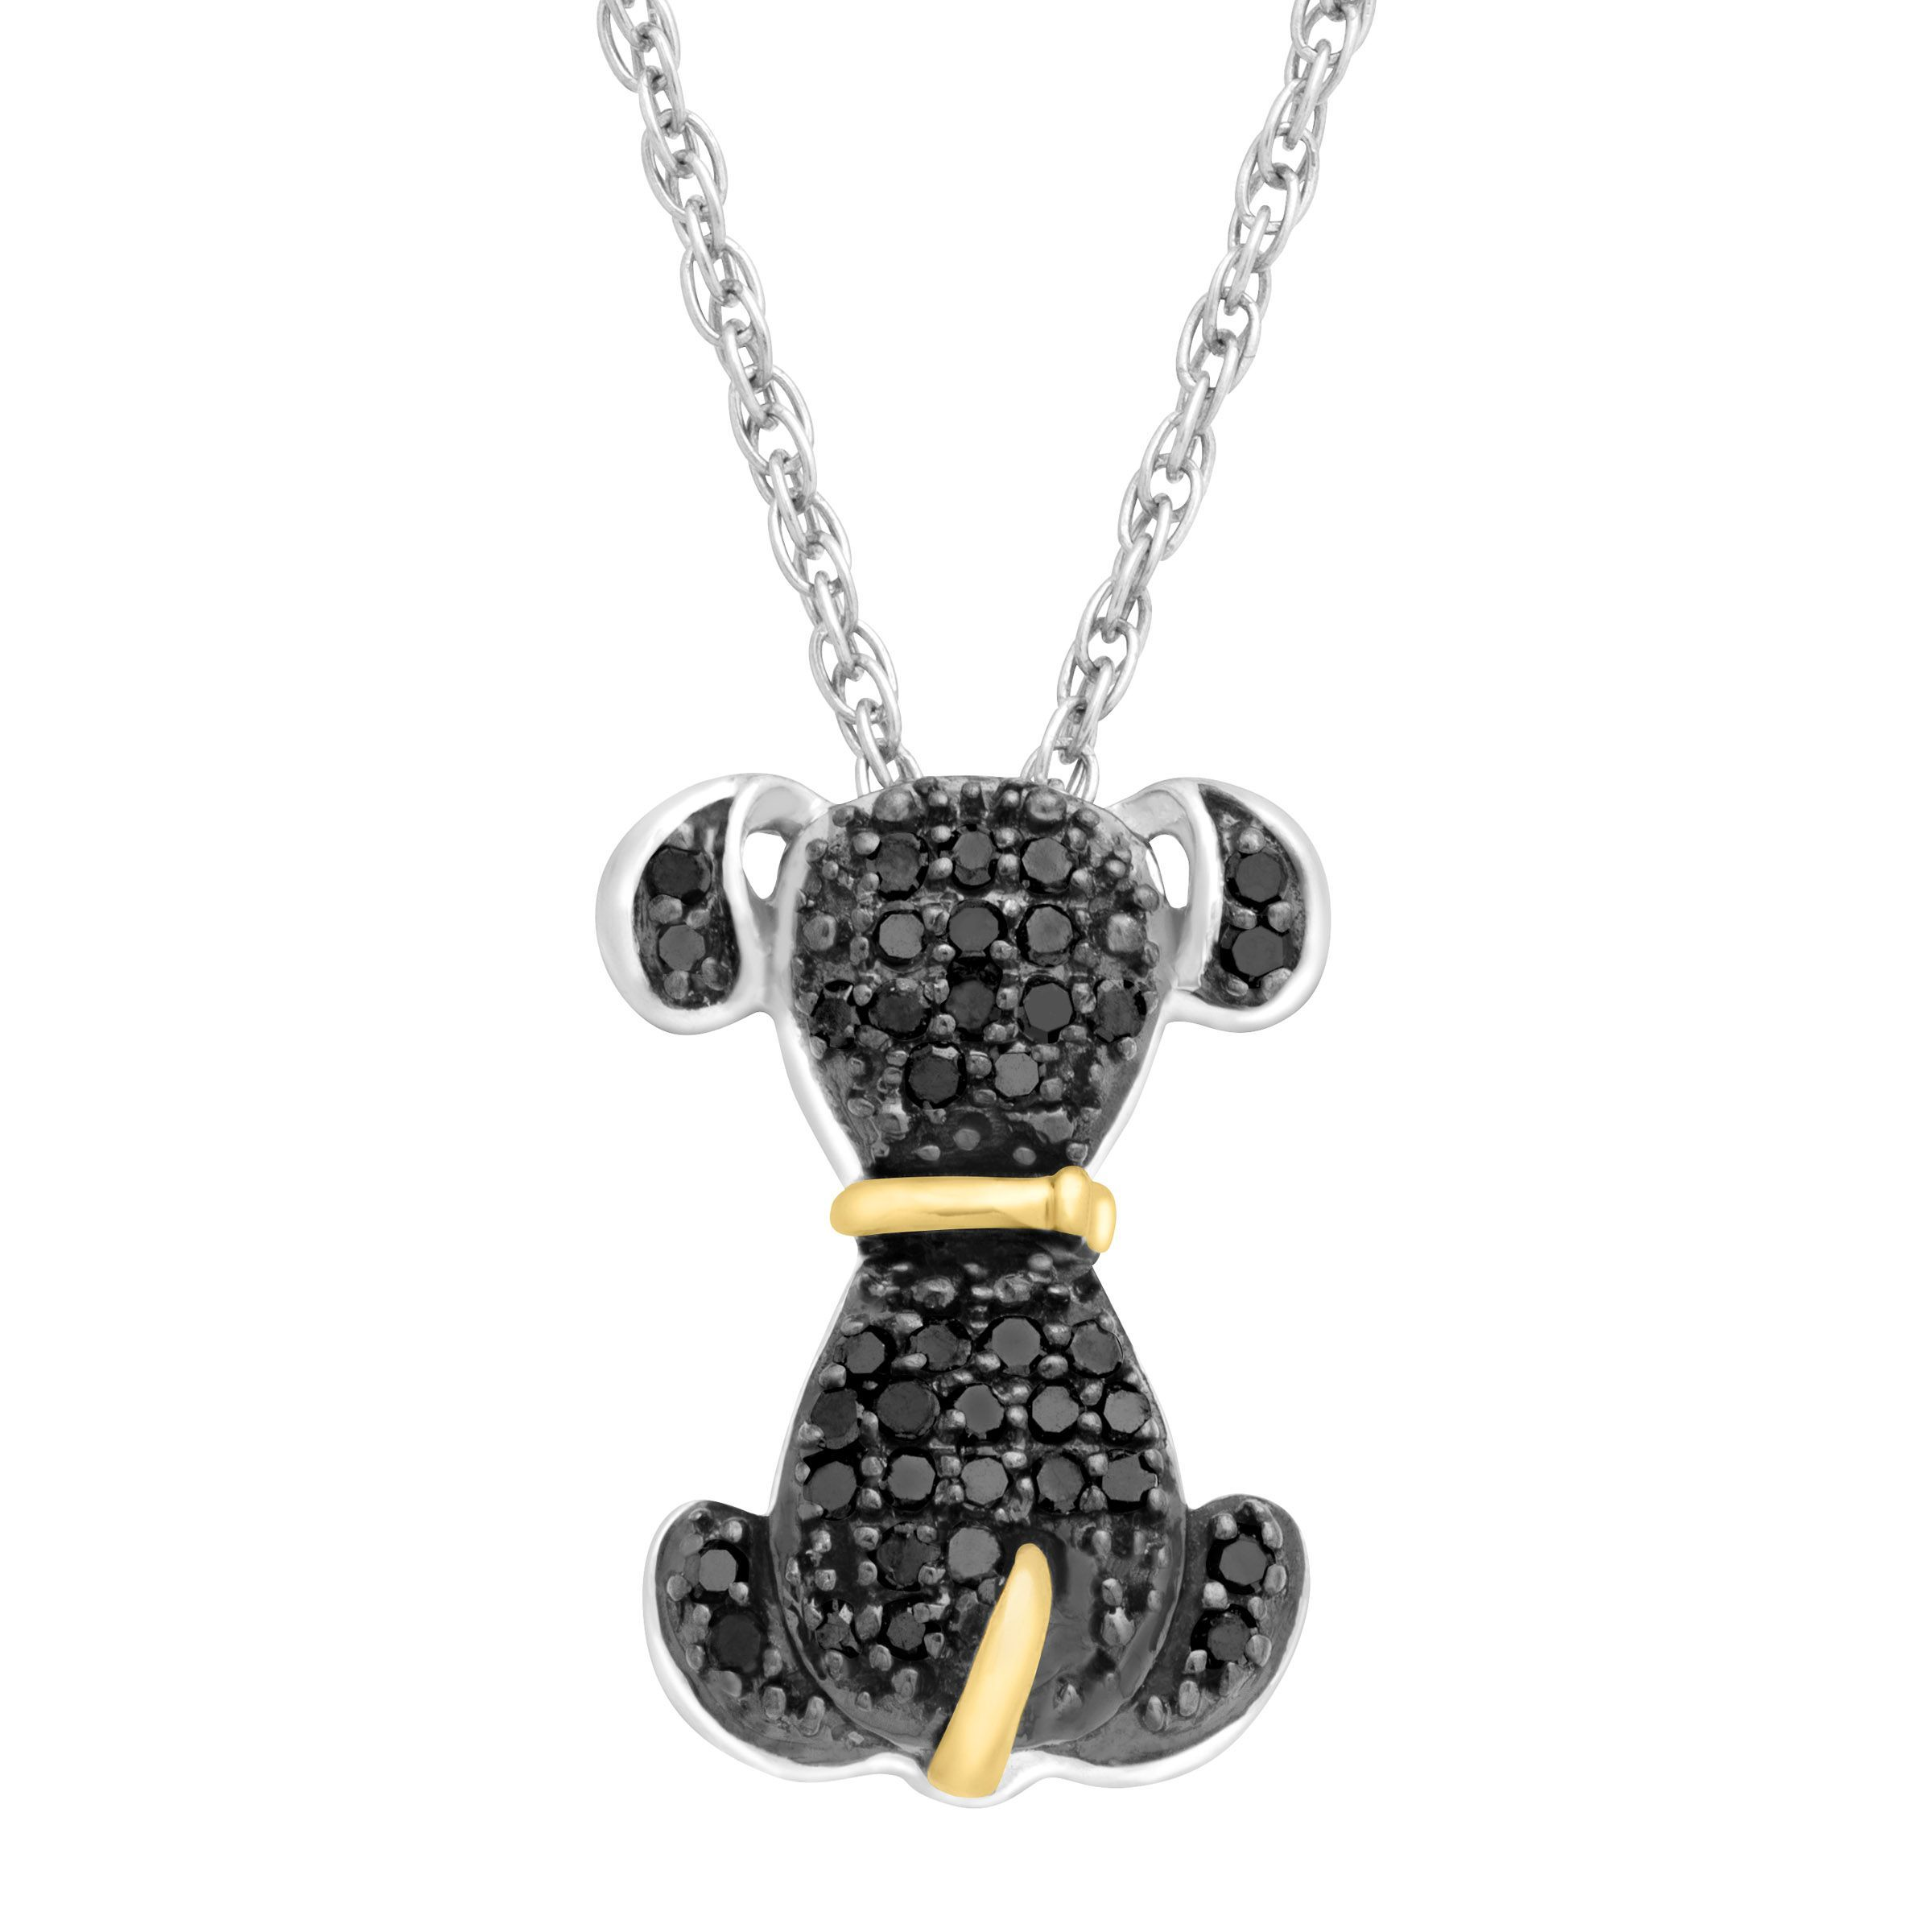 15 ct black diamond dog pendant in sterling silver 14k gold 15 ct black diamond dog pendant in sterling silver 14k gold aloadofball Choice Image